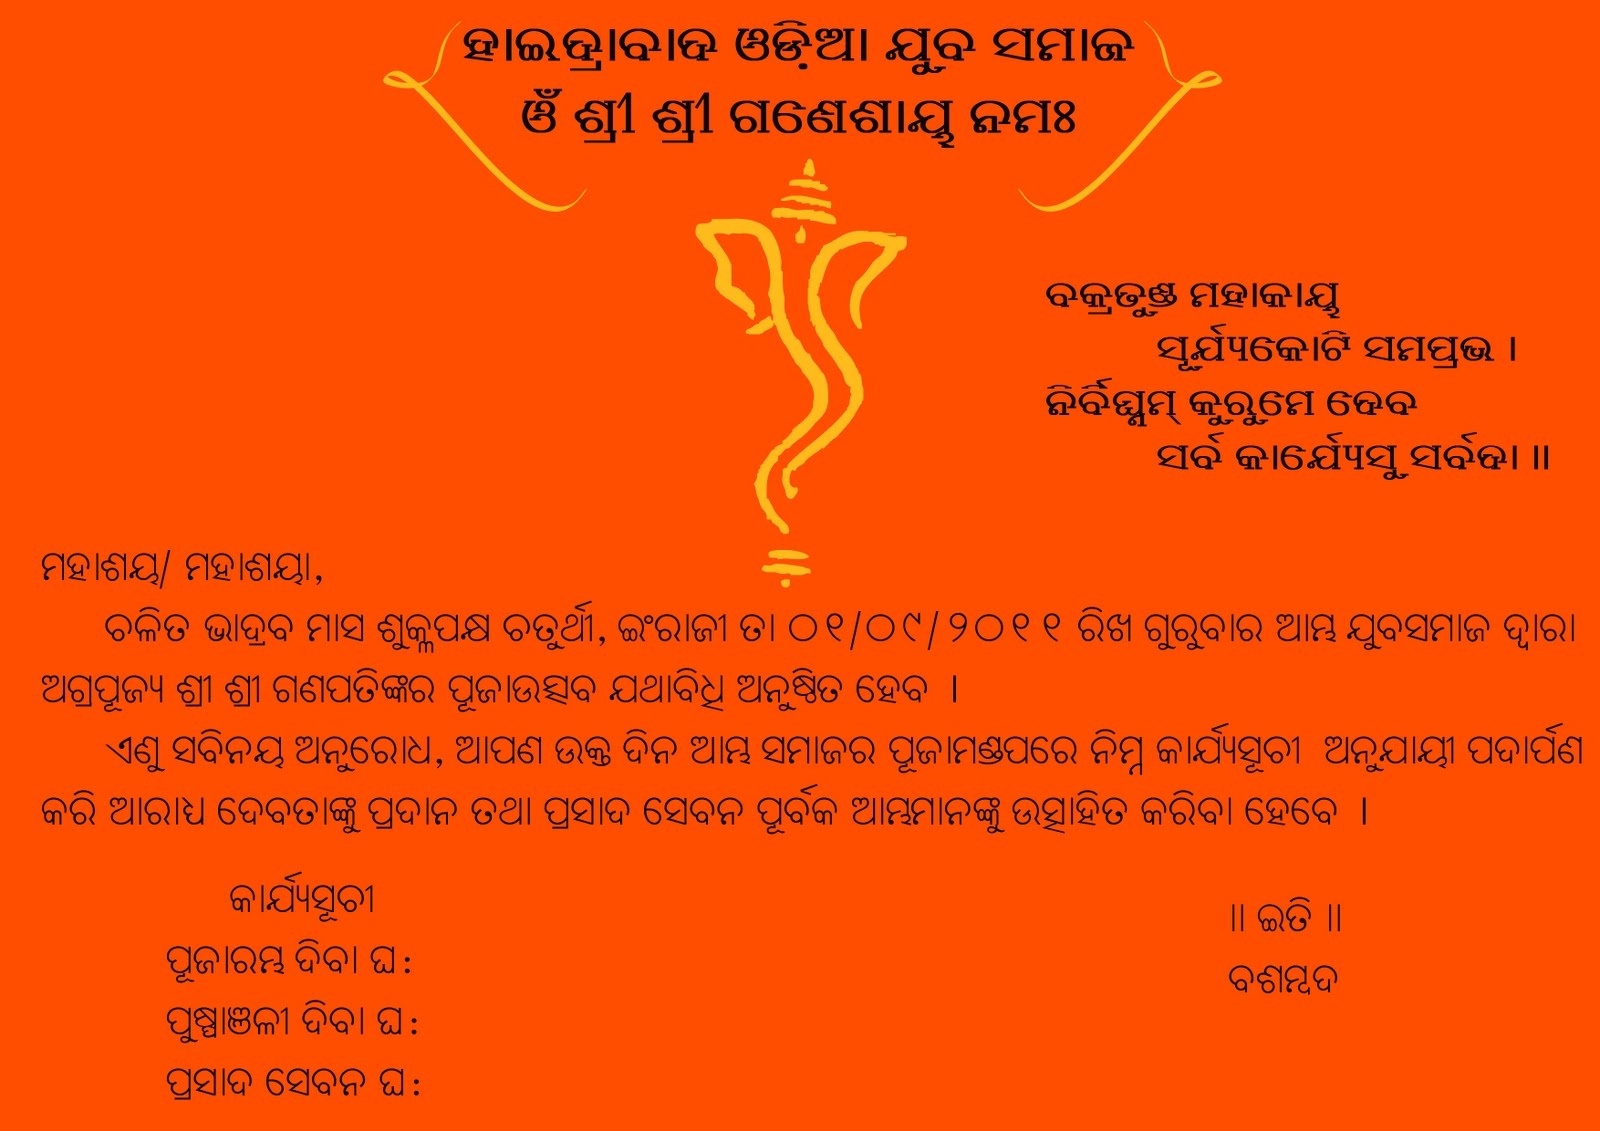 Meeting For Ganesh Puja On Sunday 21st August Jagannath Temple 4pm